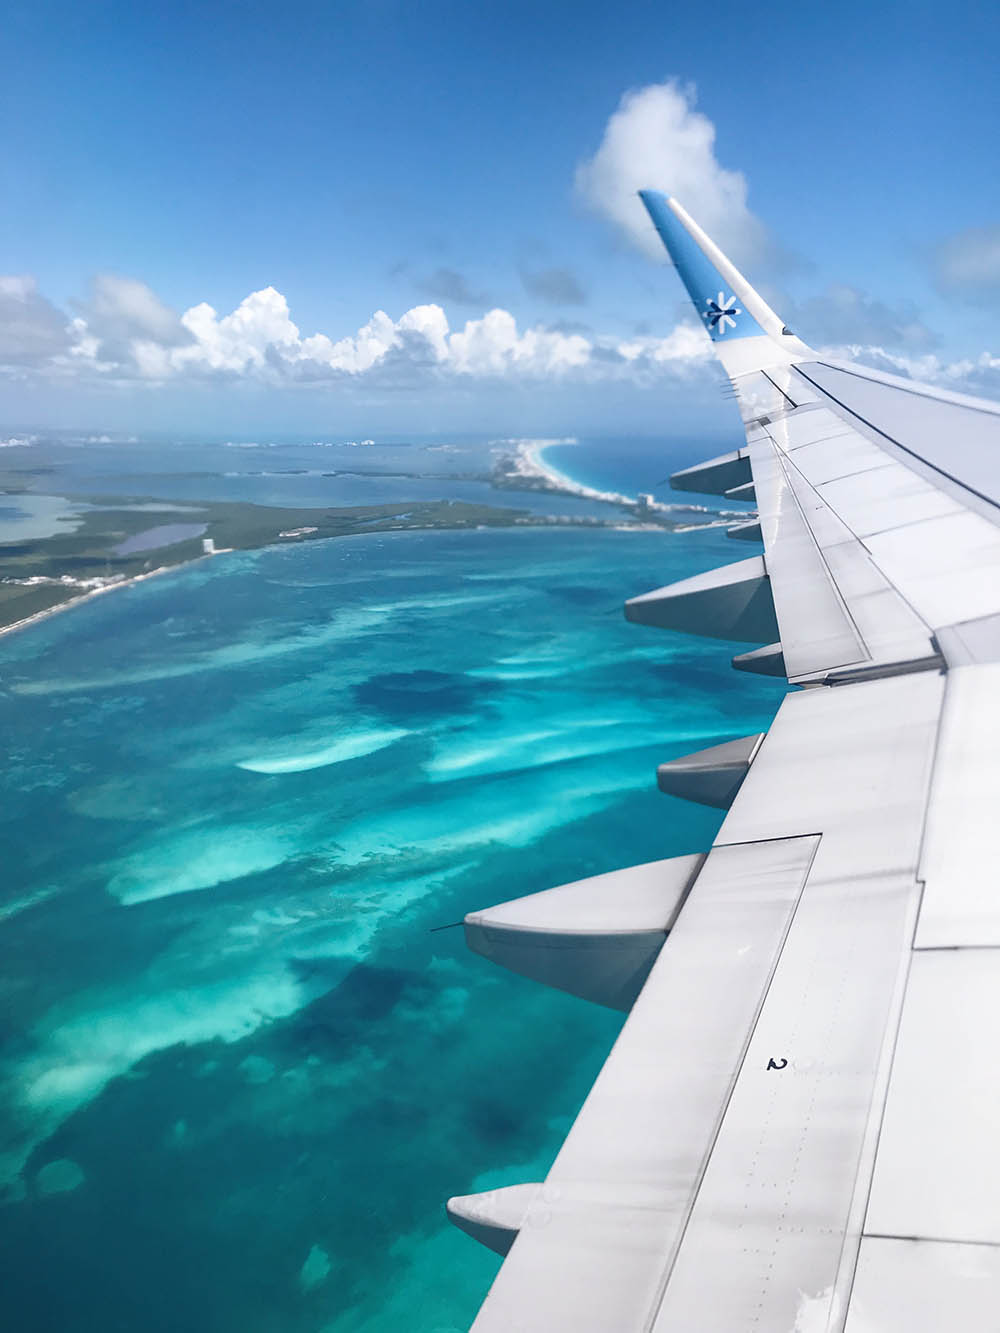 The activation of flights to the Mexican Caribbean has started